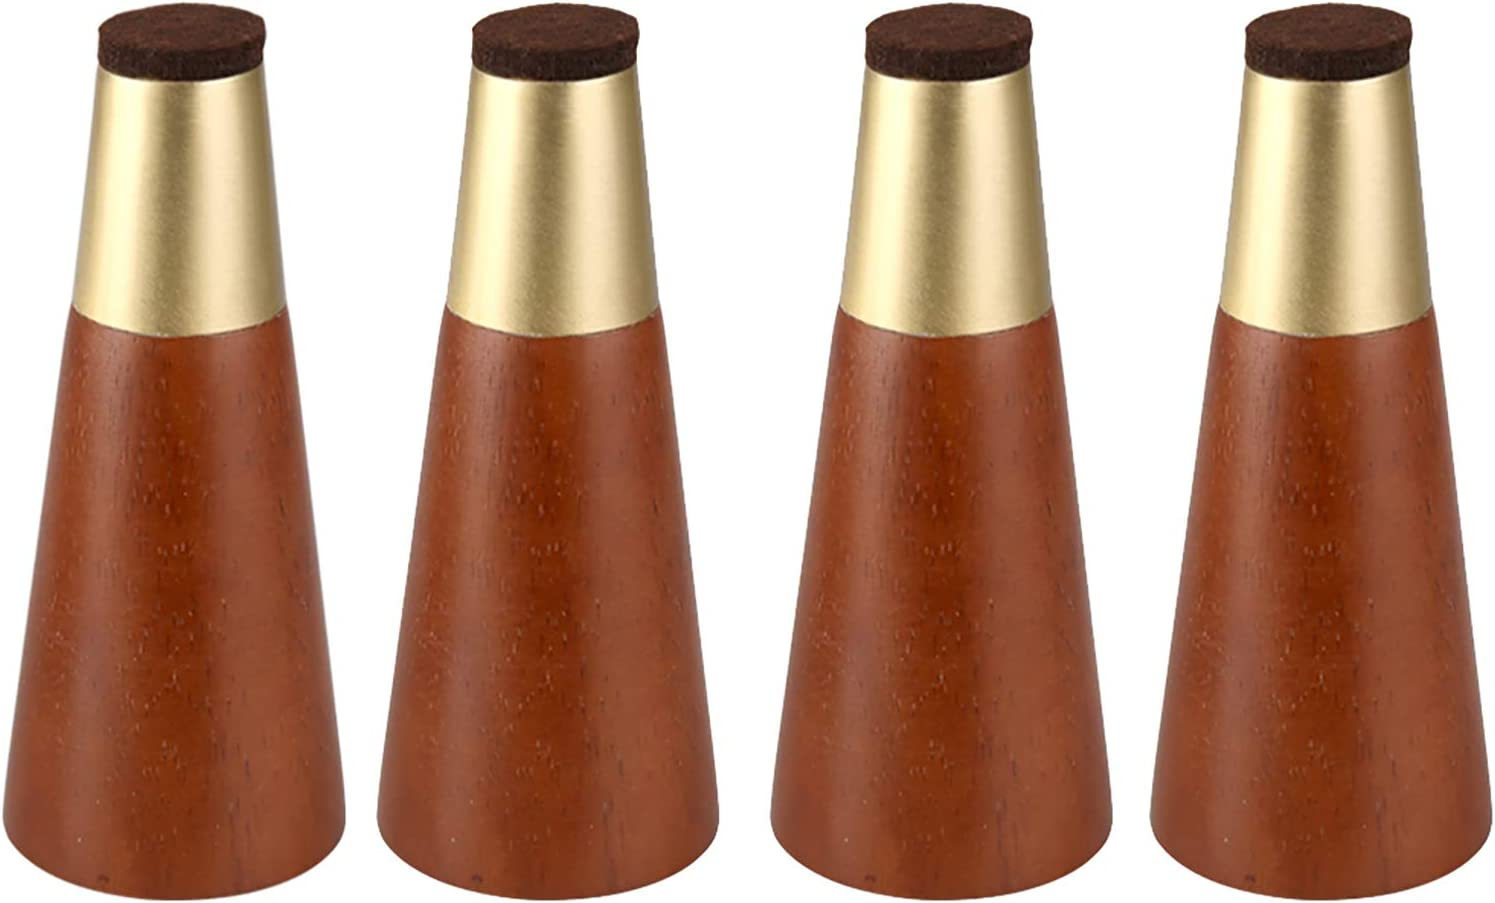 4pcs Furniture Legs, Modern Solid Wood Legs for Furniture, Tapered Pyramid Style, for Sofa, Couch, Bed, Coffee Table, Send Installation Screws